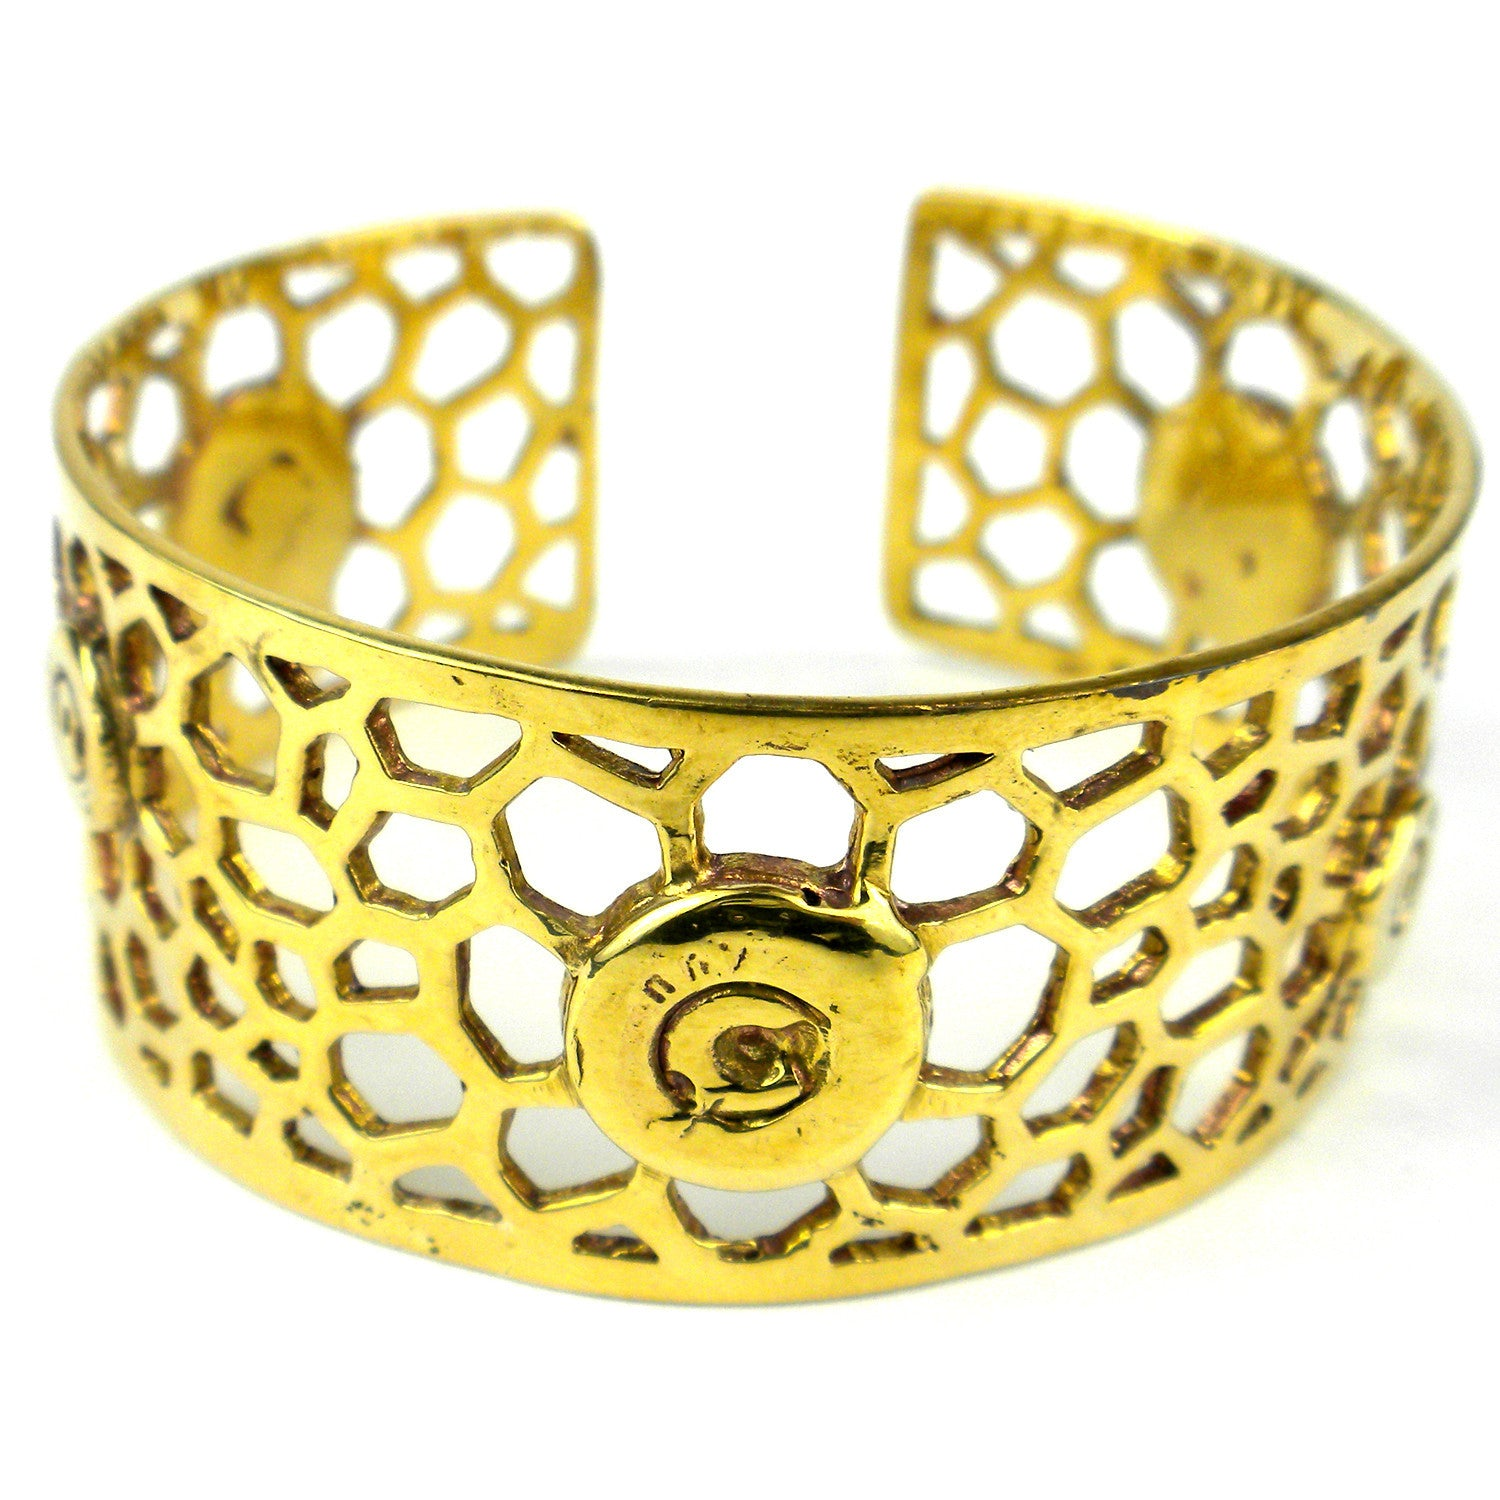 Bomb Casing Beehive Cuff - Craftworks Cambodia (Fair Trade)